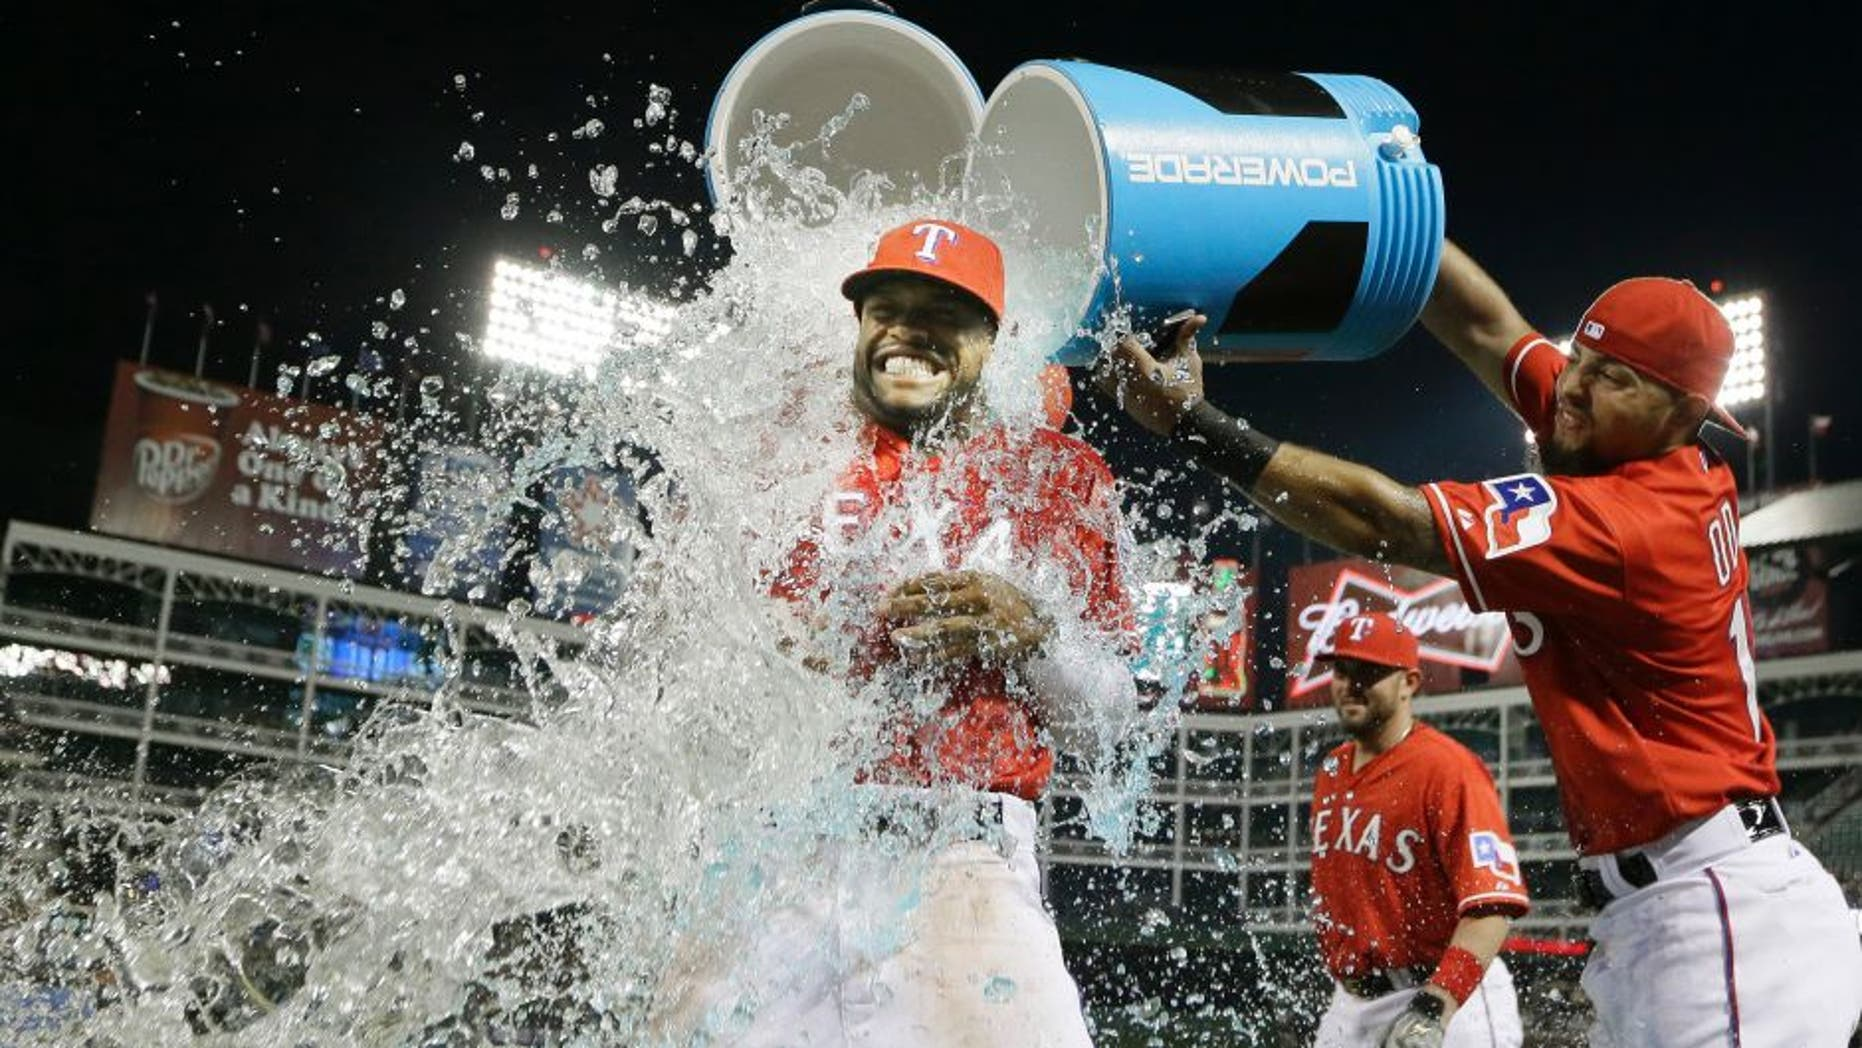 Texas Rangers Delino DeShields, left, gets doused with the drink cooler by teammate Rougned Odor after a baseball game against the Tampa Bay Rays in Arlington, Texas, Friday, Aug. 14, 2015. The Rangers won 5-3. (AP Photo/LM Otero)